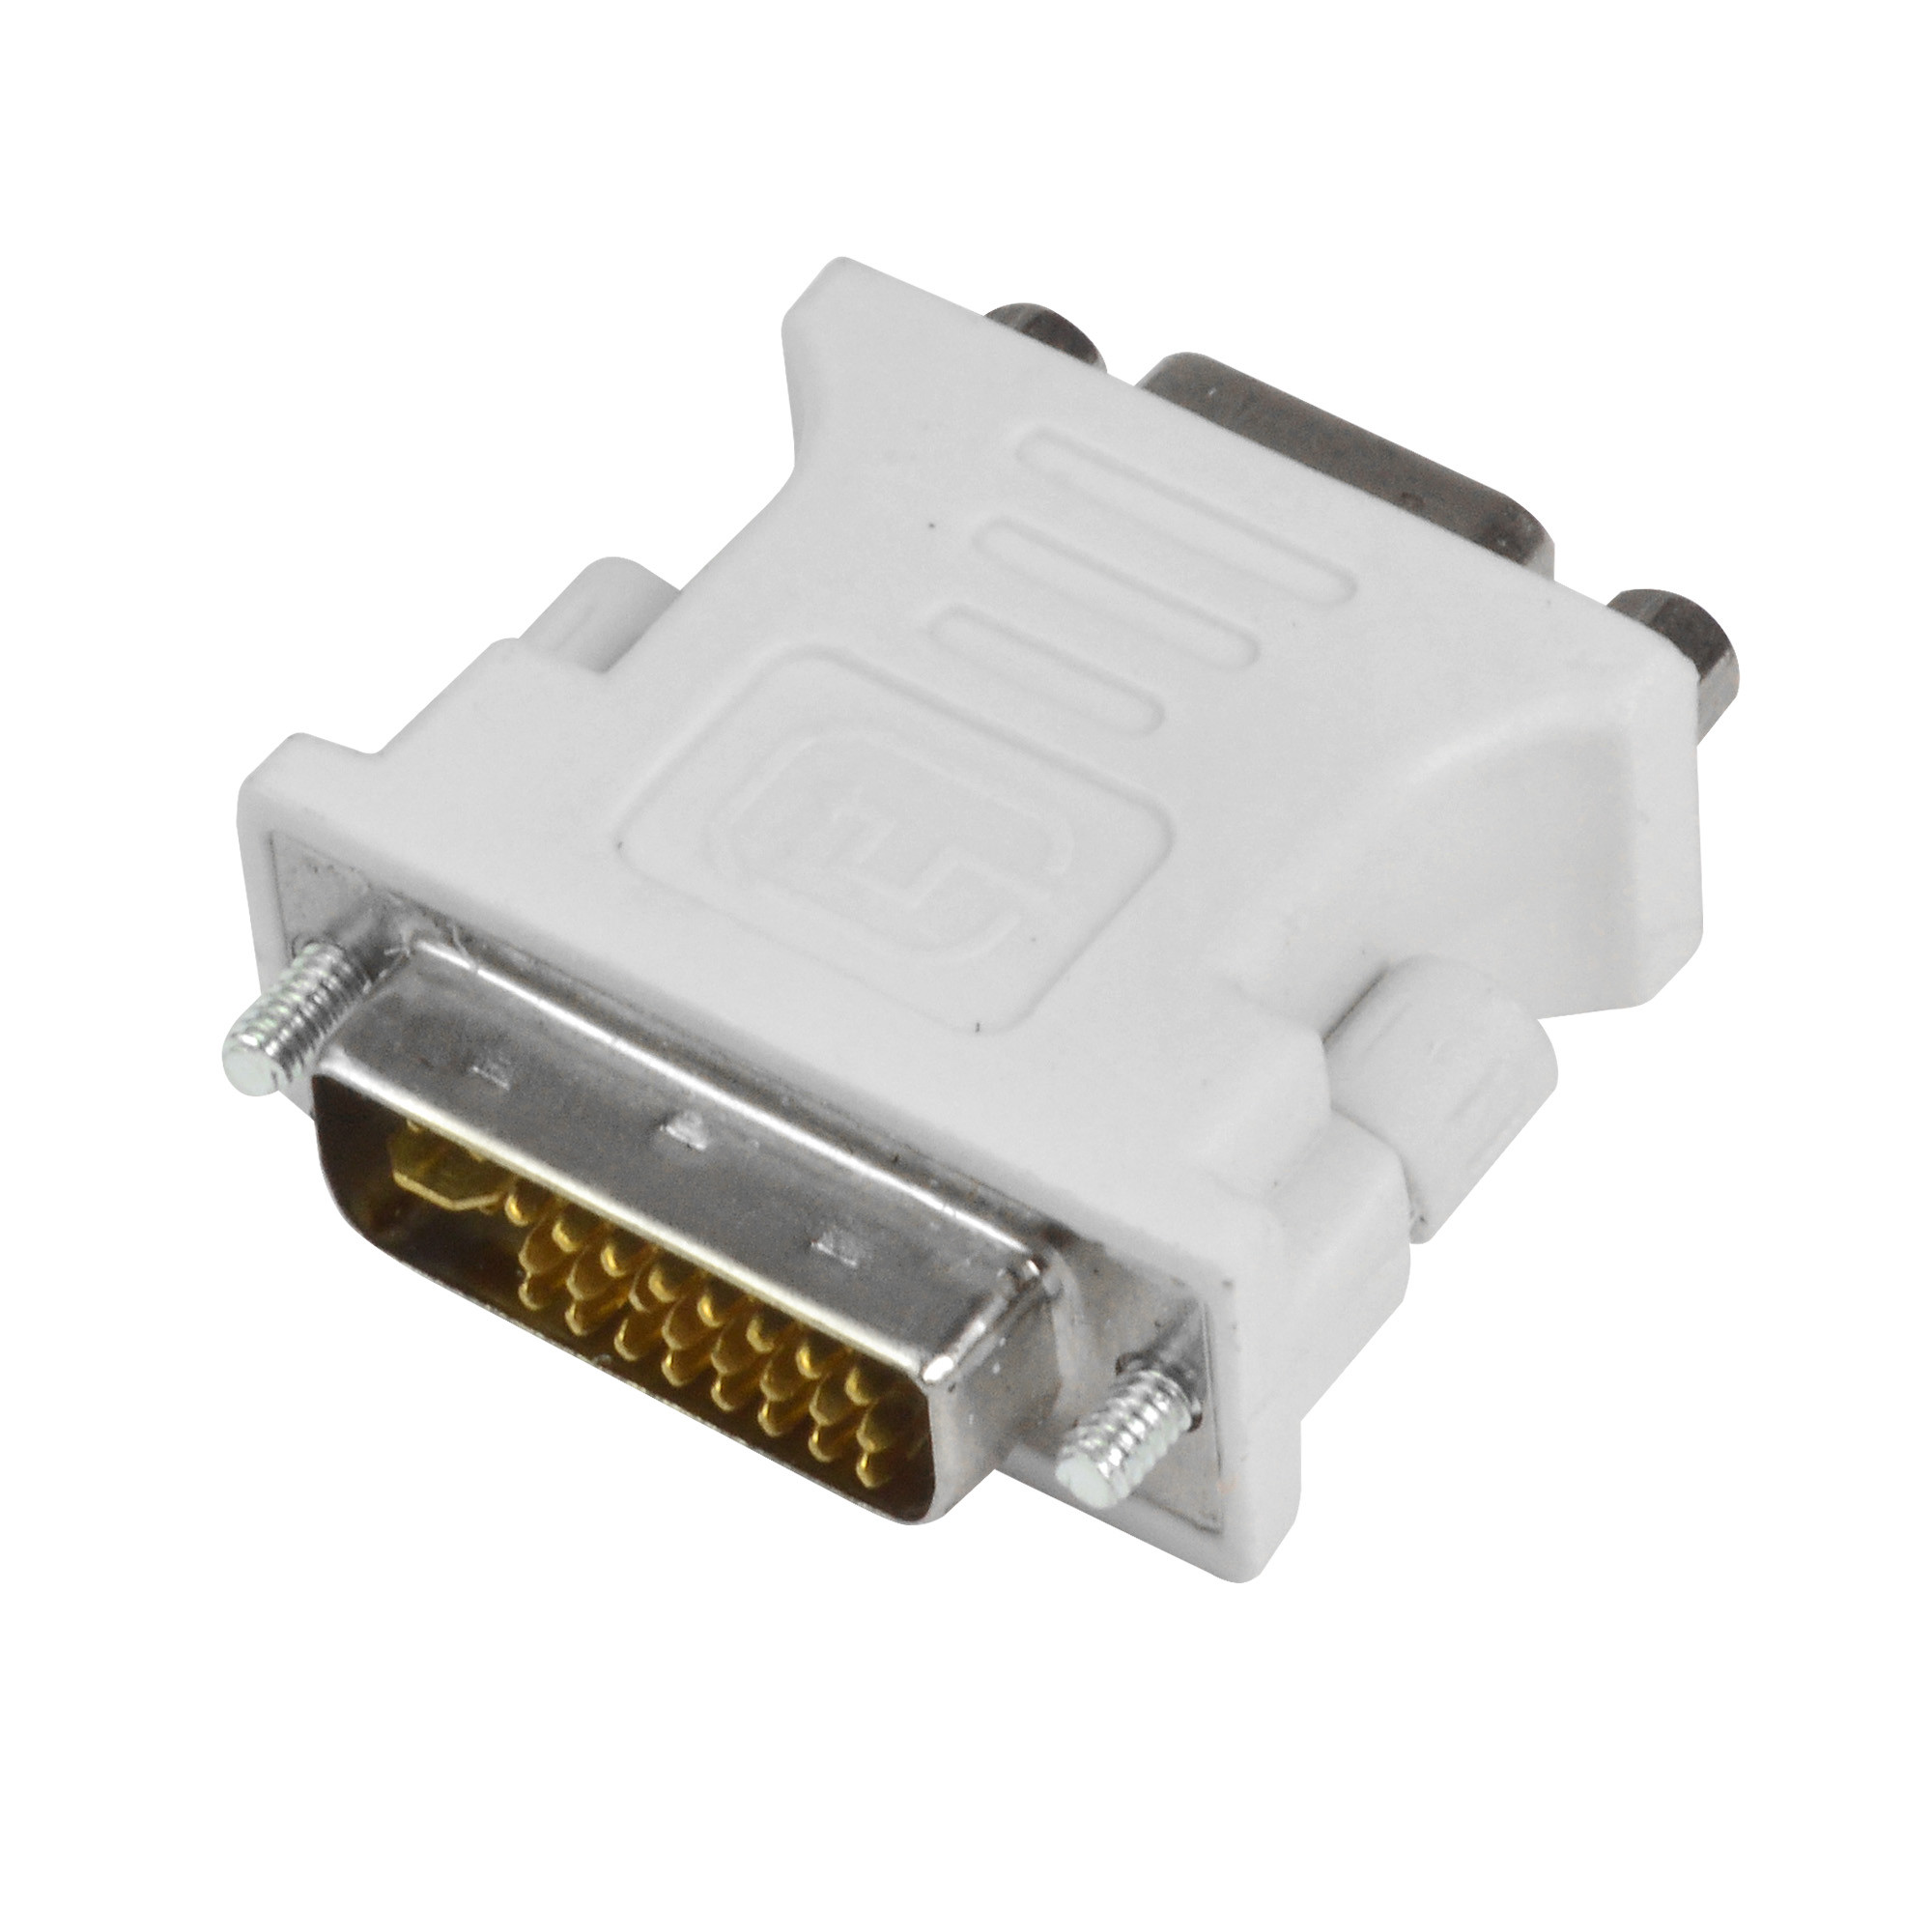 MENGS® DVI 24+5 Pin Male To 15 Pin VGA Female Adapter Converter for PC and HDTV